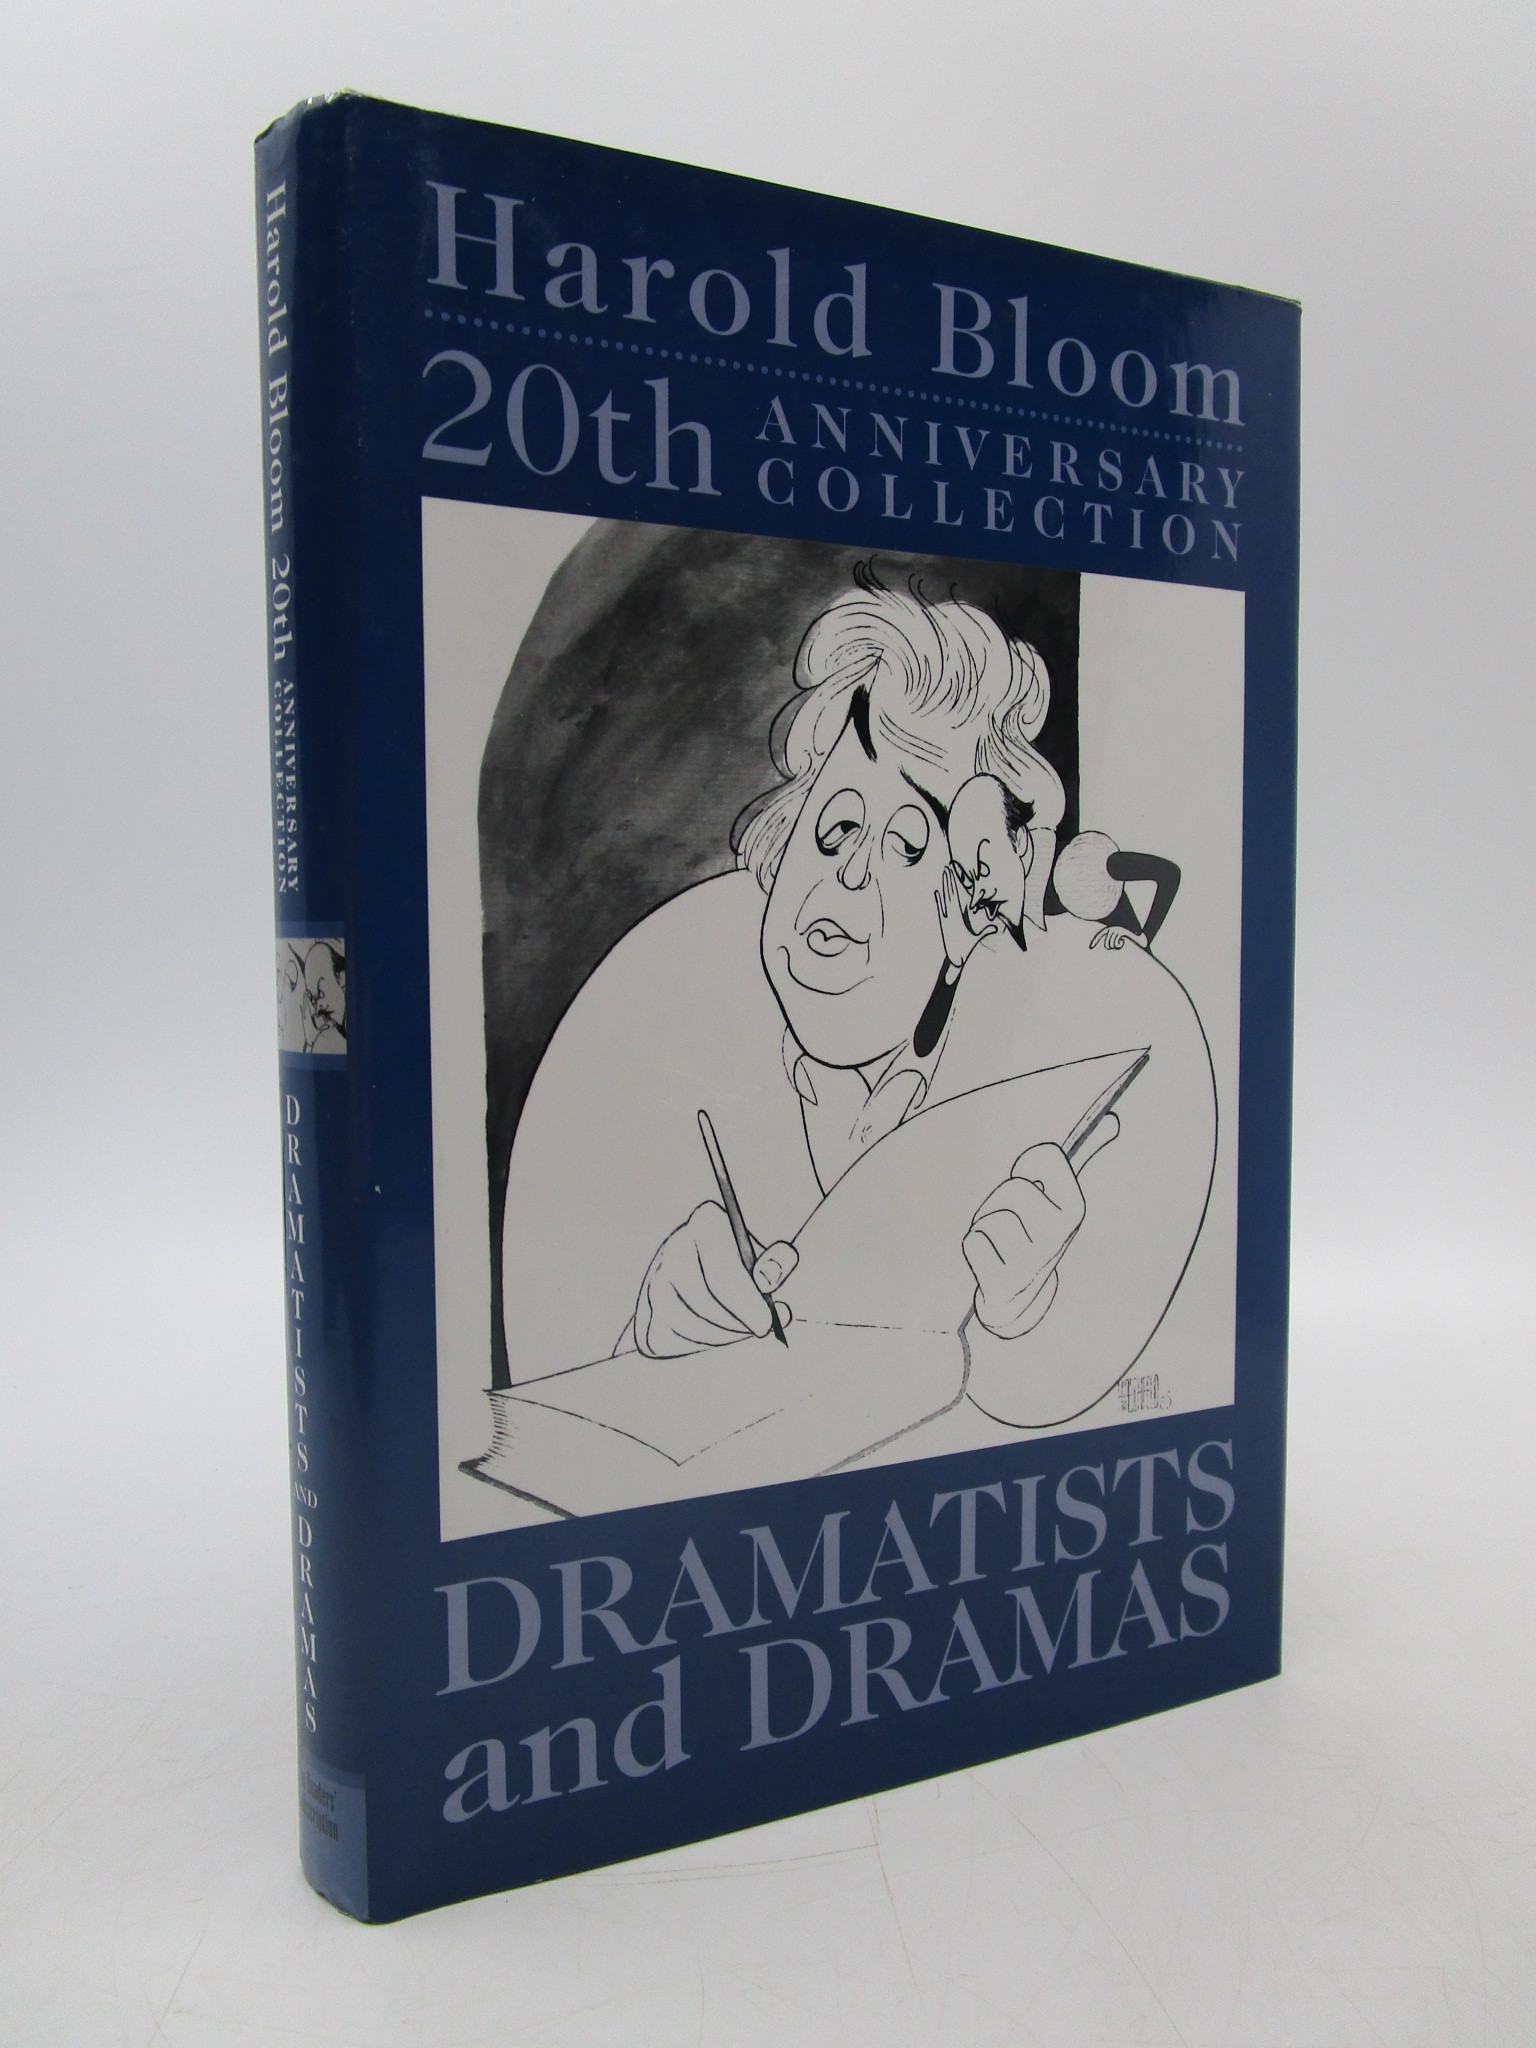 Image for Dramatists and Dramas (Harold Bloom 20th Anniversary Collection)